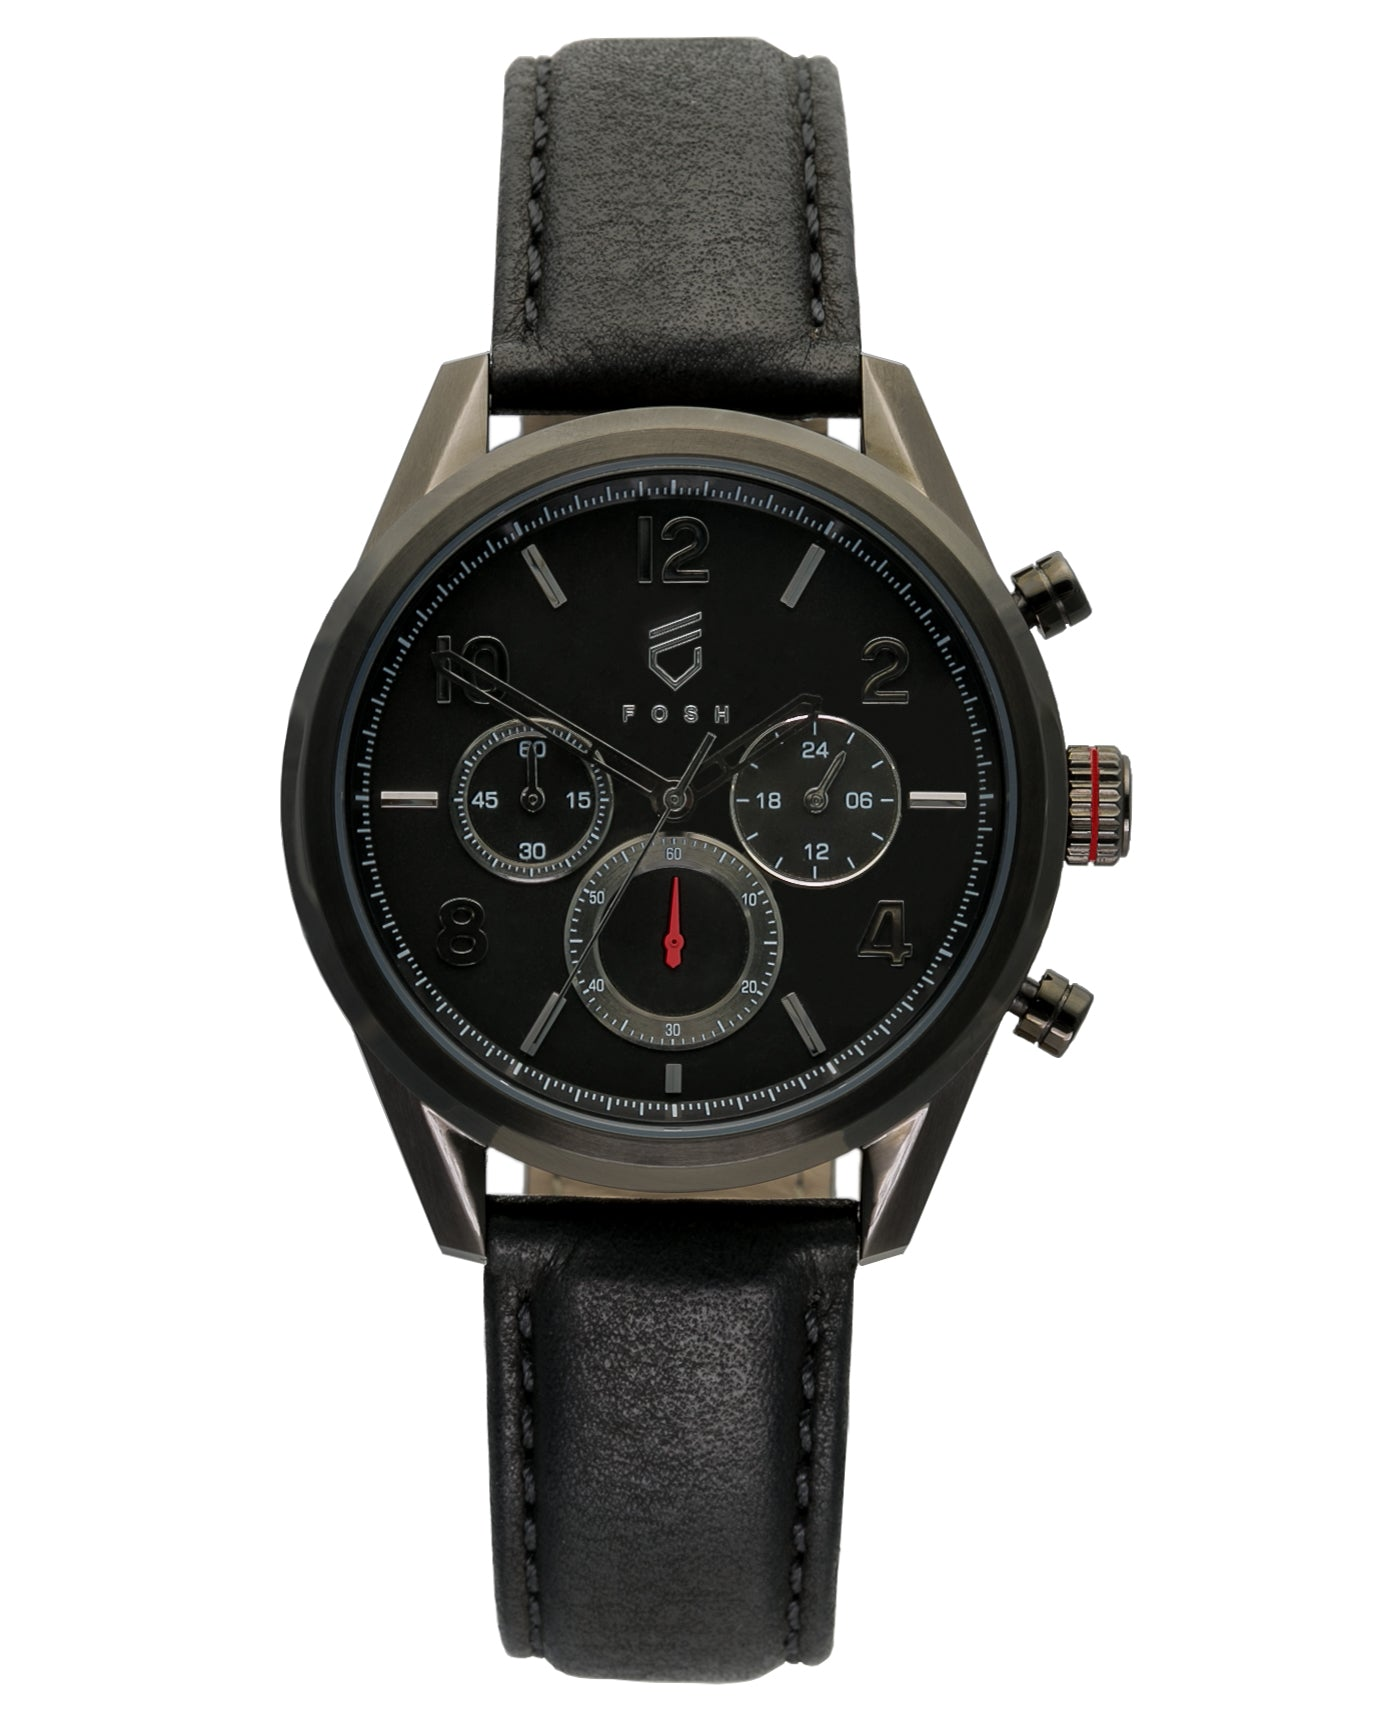 Black stainless steel chronograph watch with red second hand accents and interchangeable black leather strap